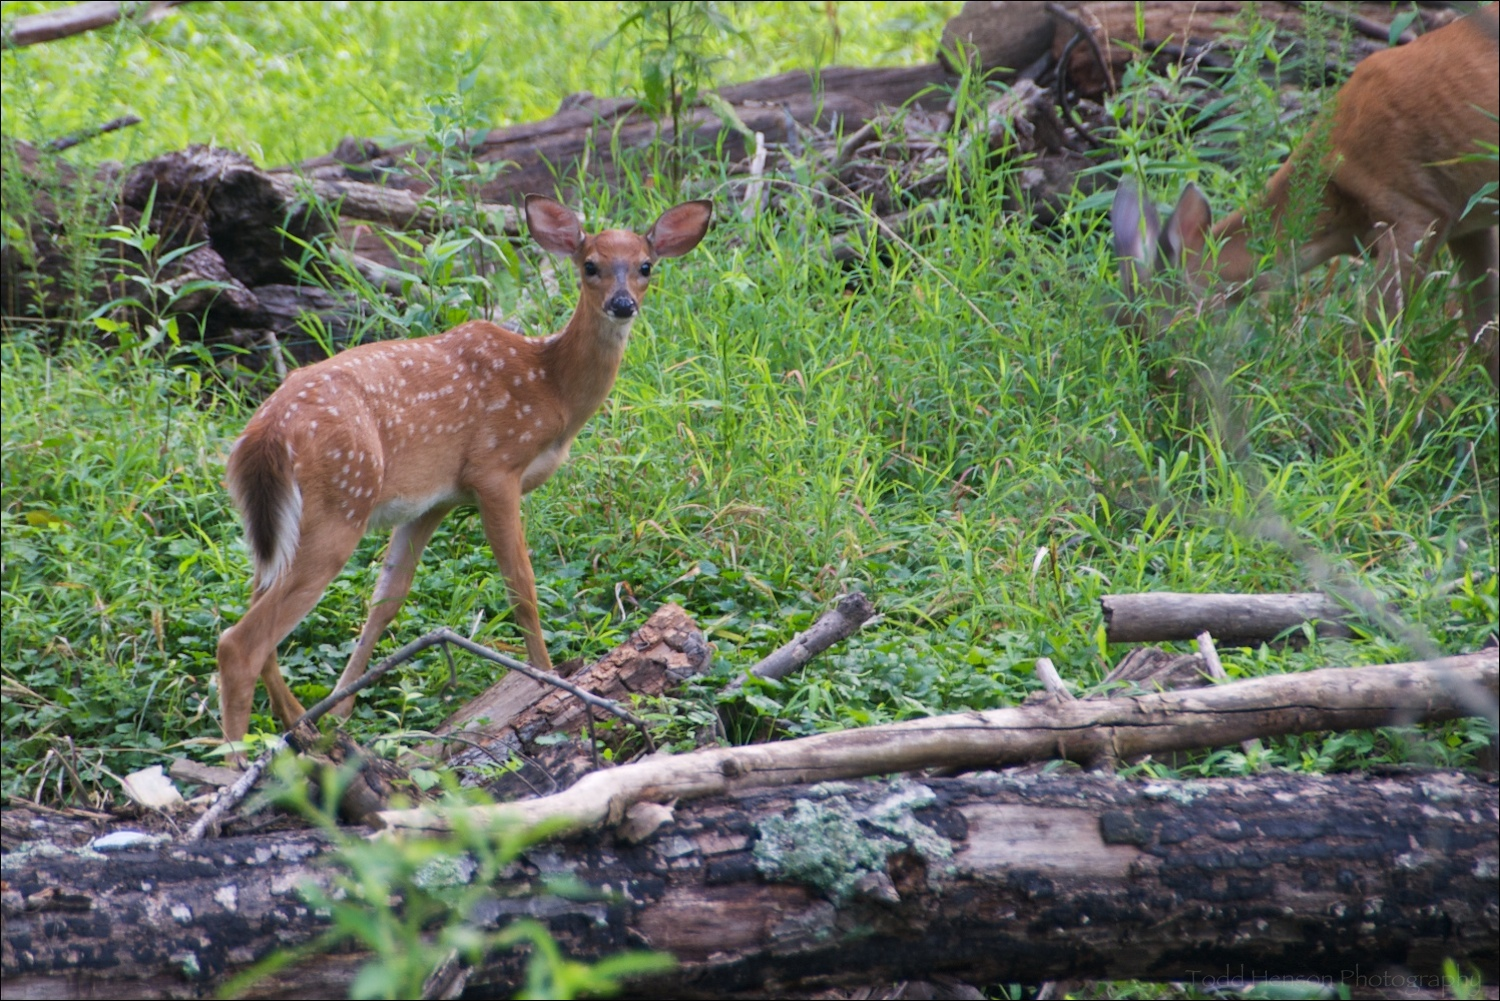 Young spotted fawn with mother to the side